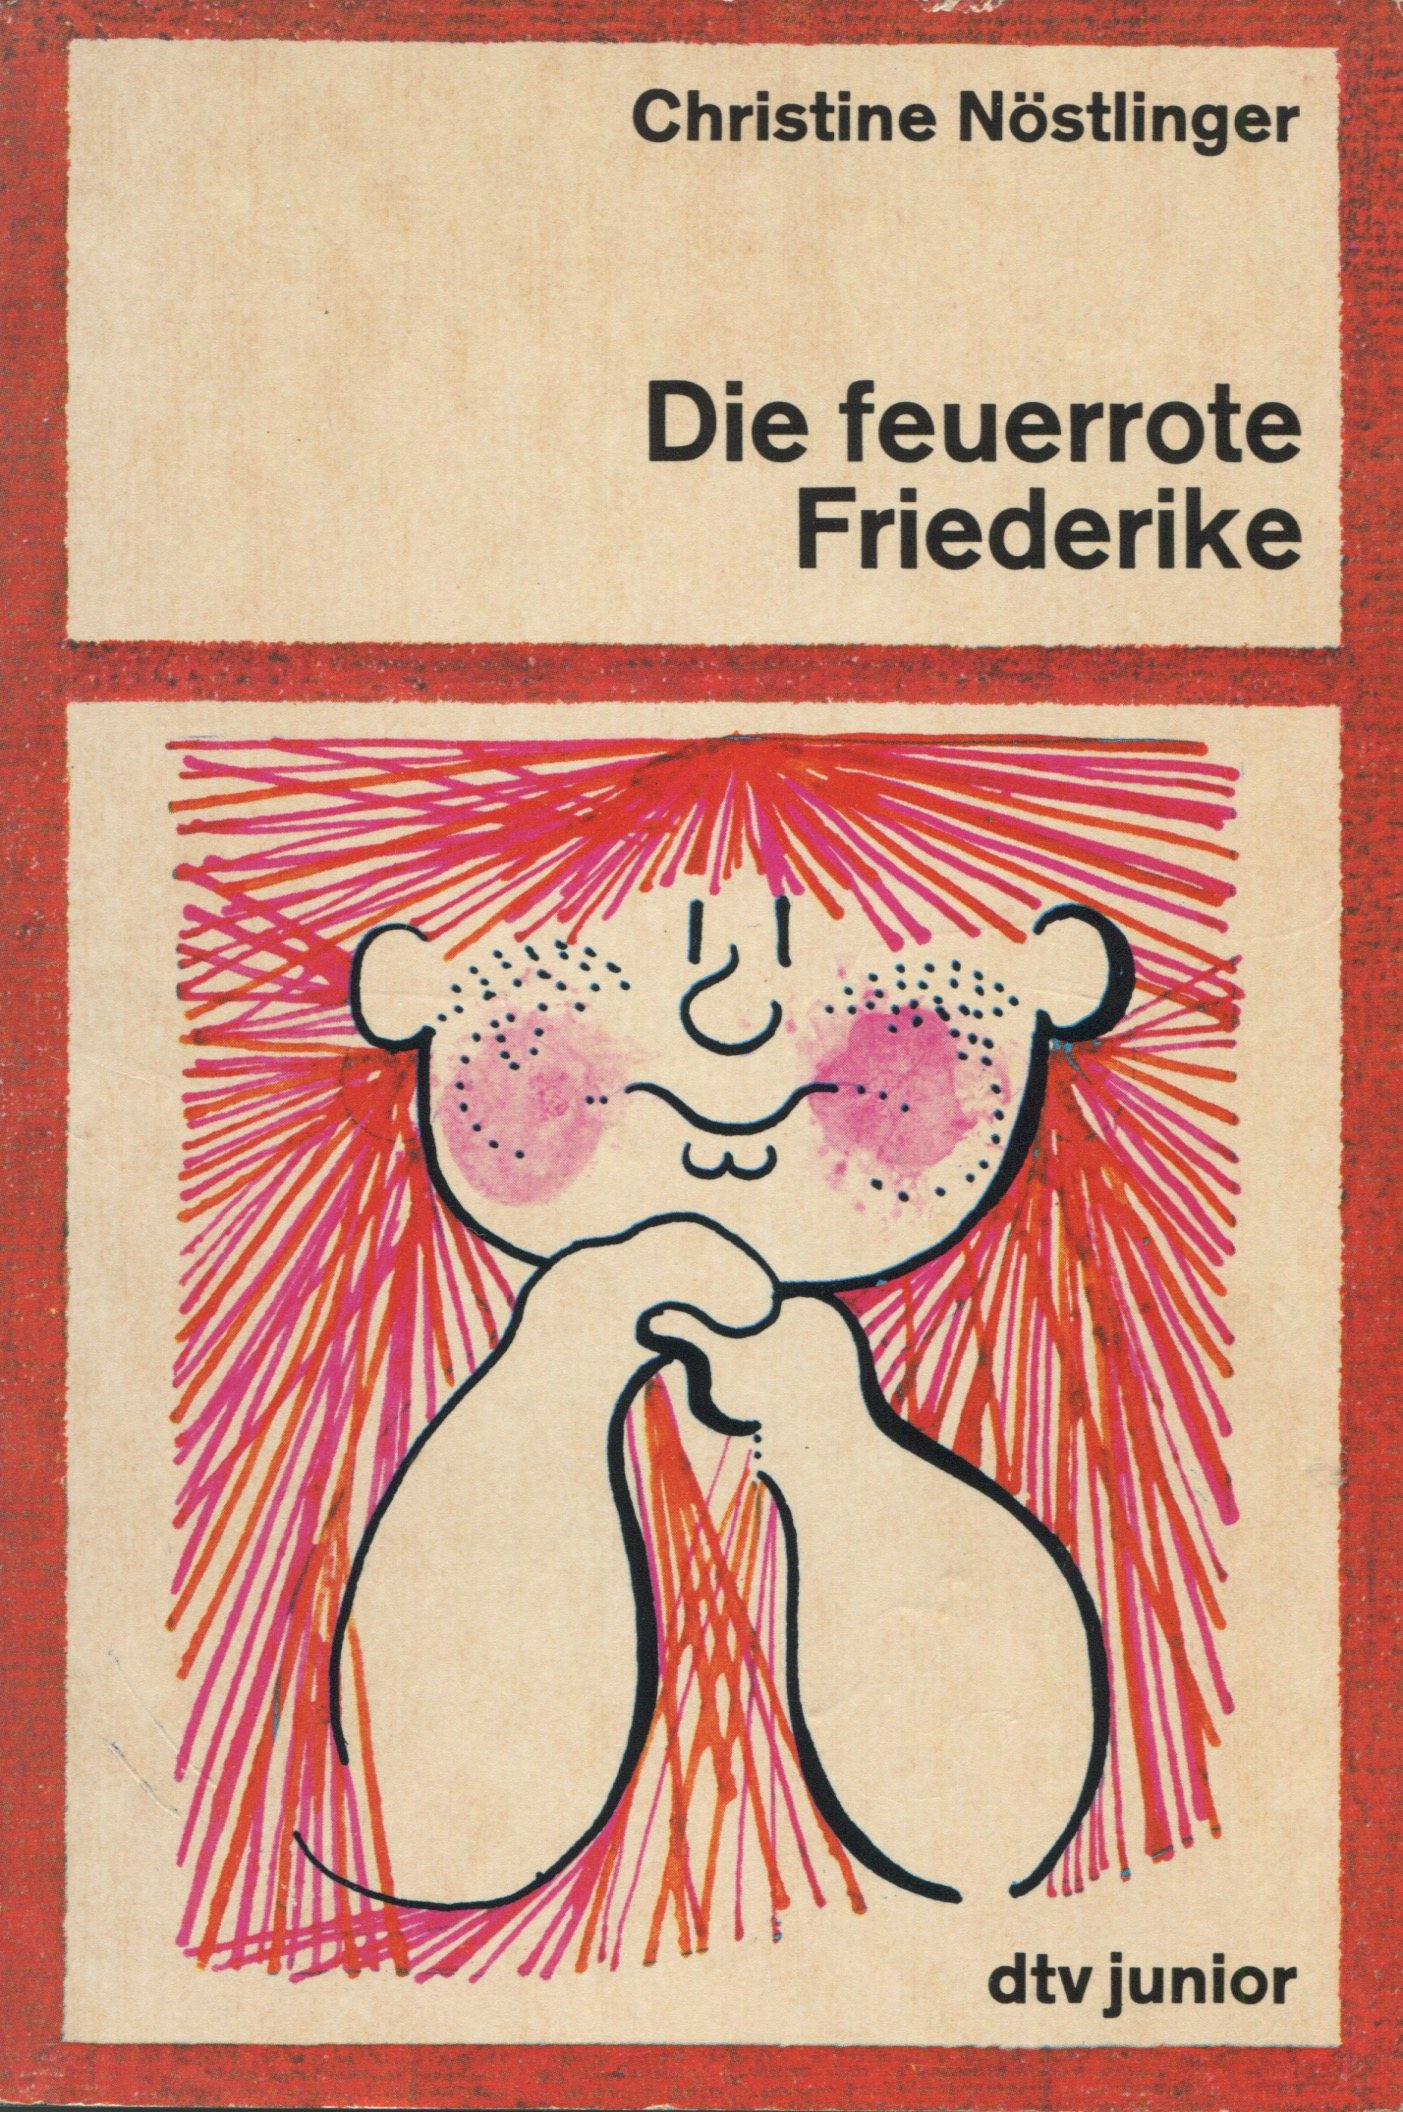 Friederike_1974_dtv.